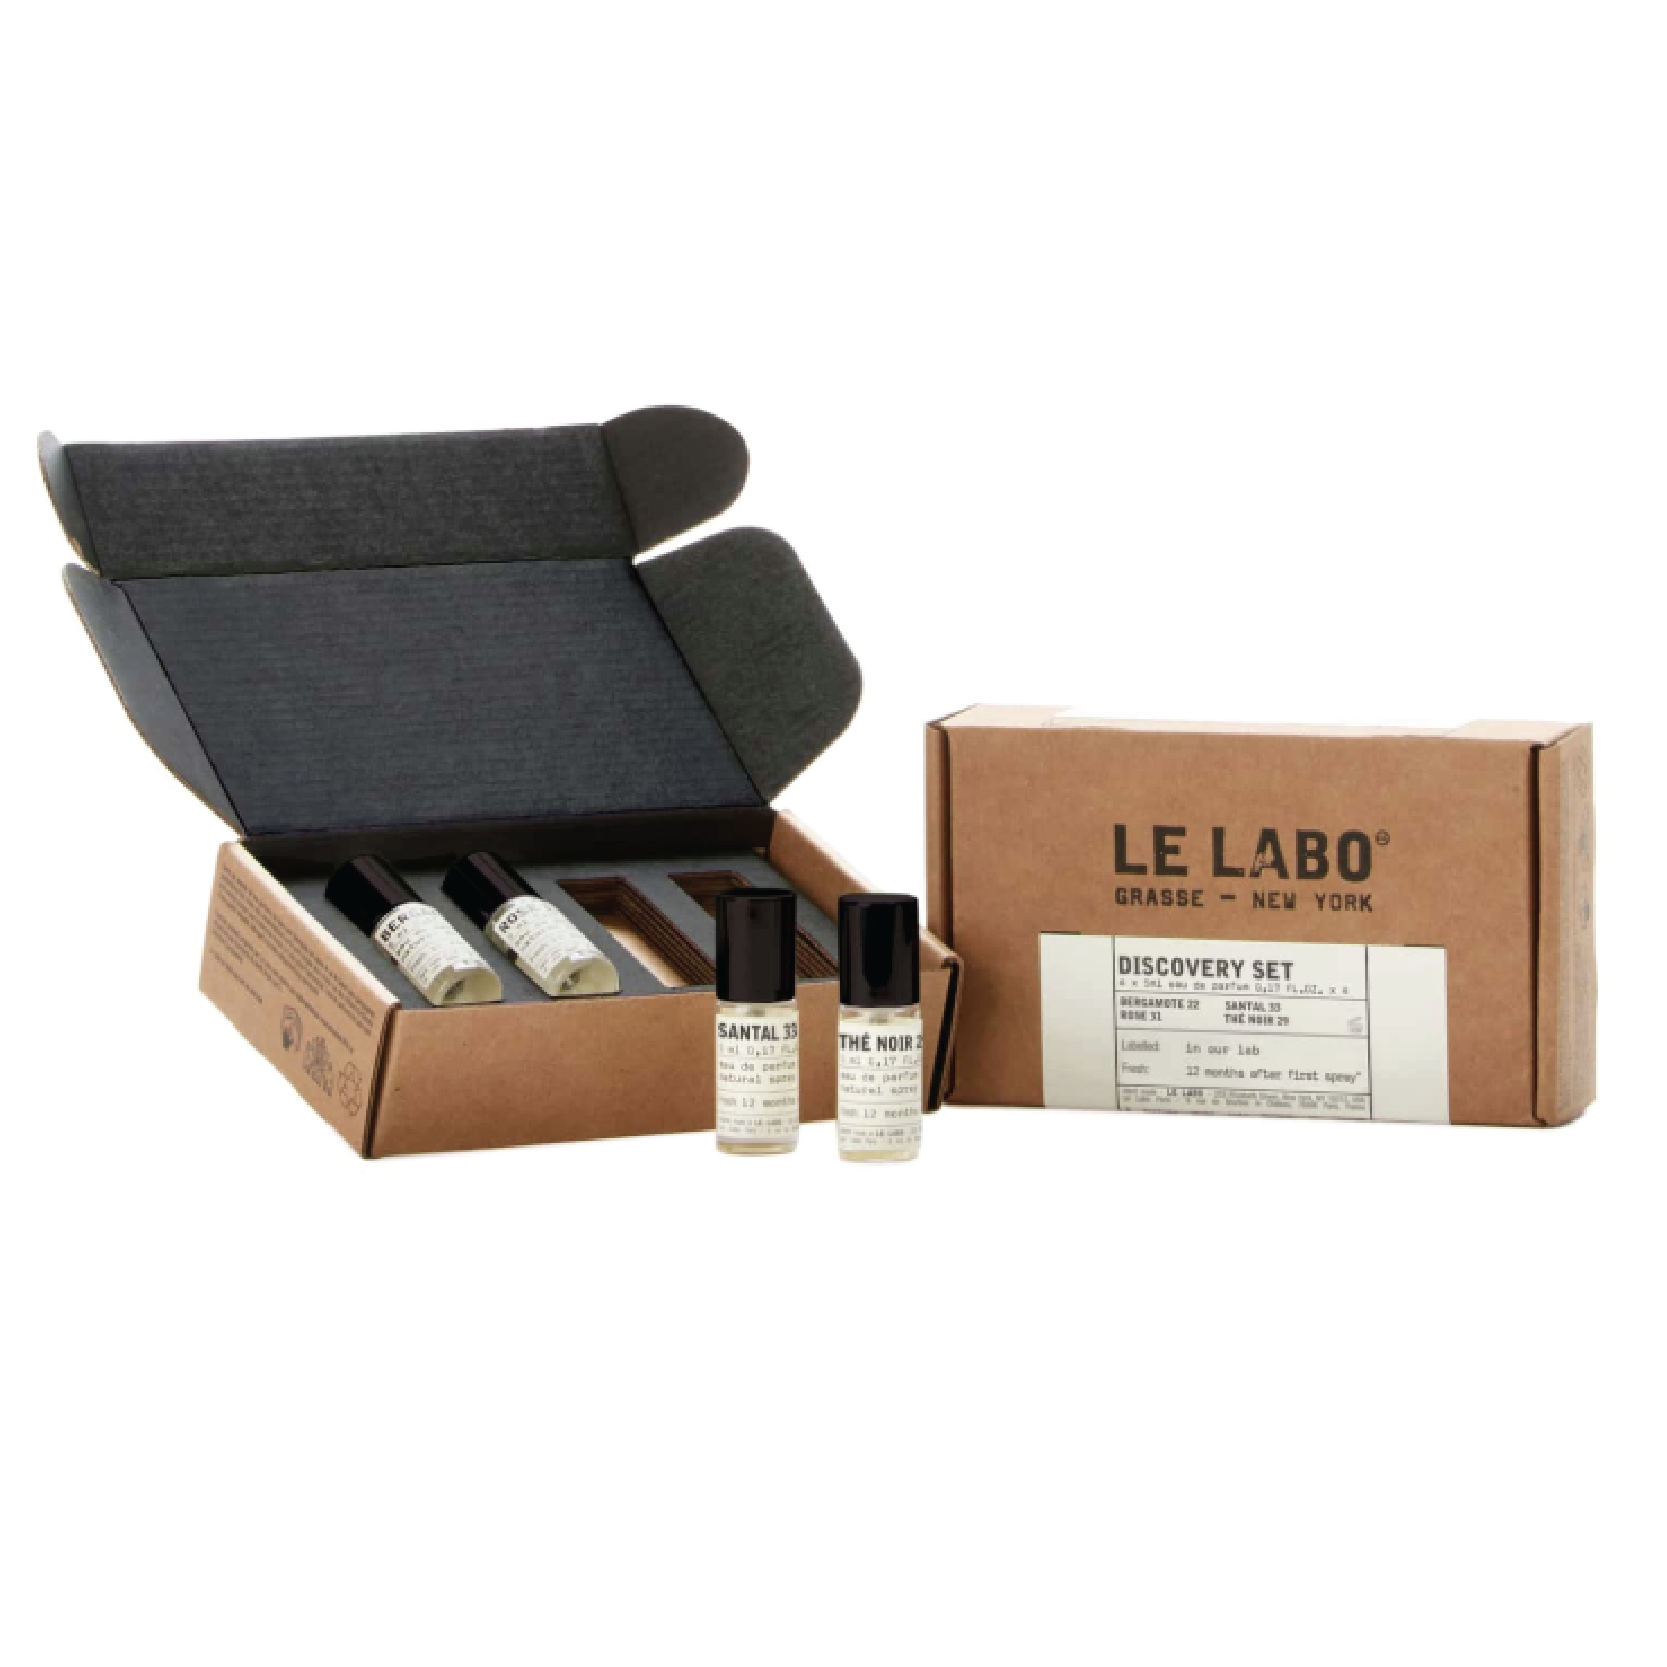 Le Labo Discovery Set - $85 at NordstromLe Labo is another favorite perfumer of mine and this is such a great starting set for travel or finding something new.